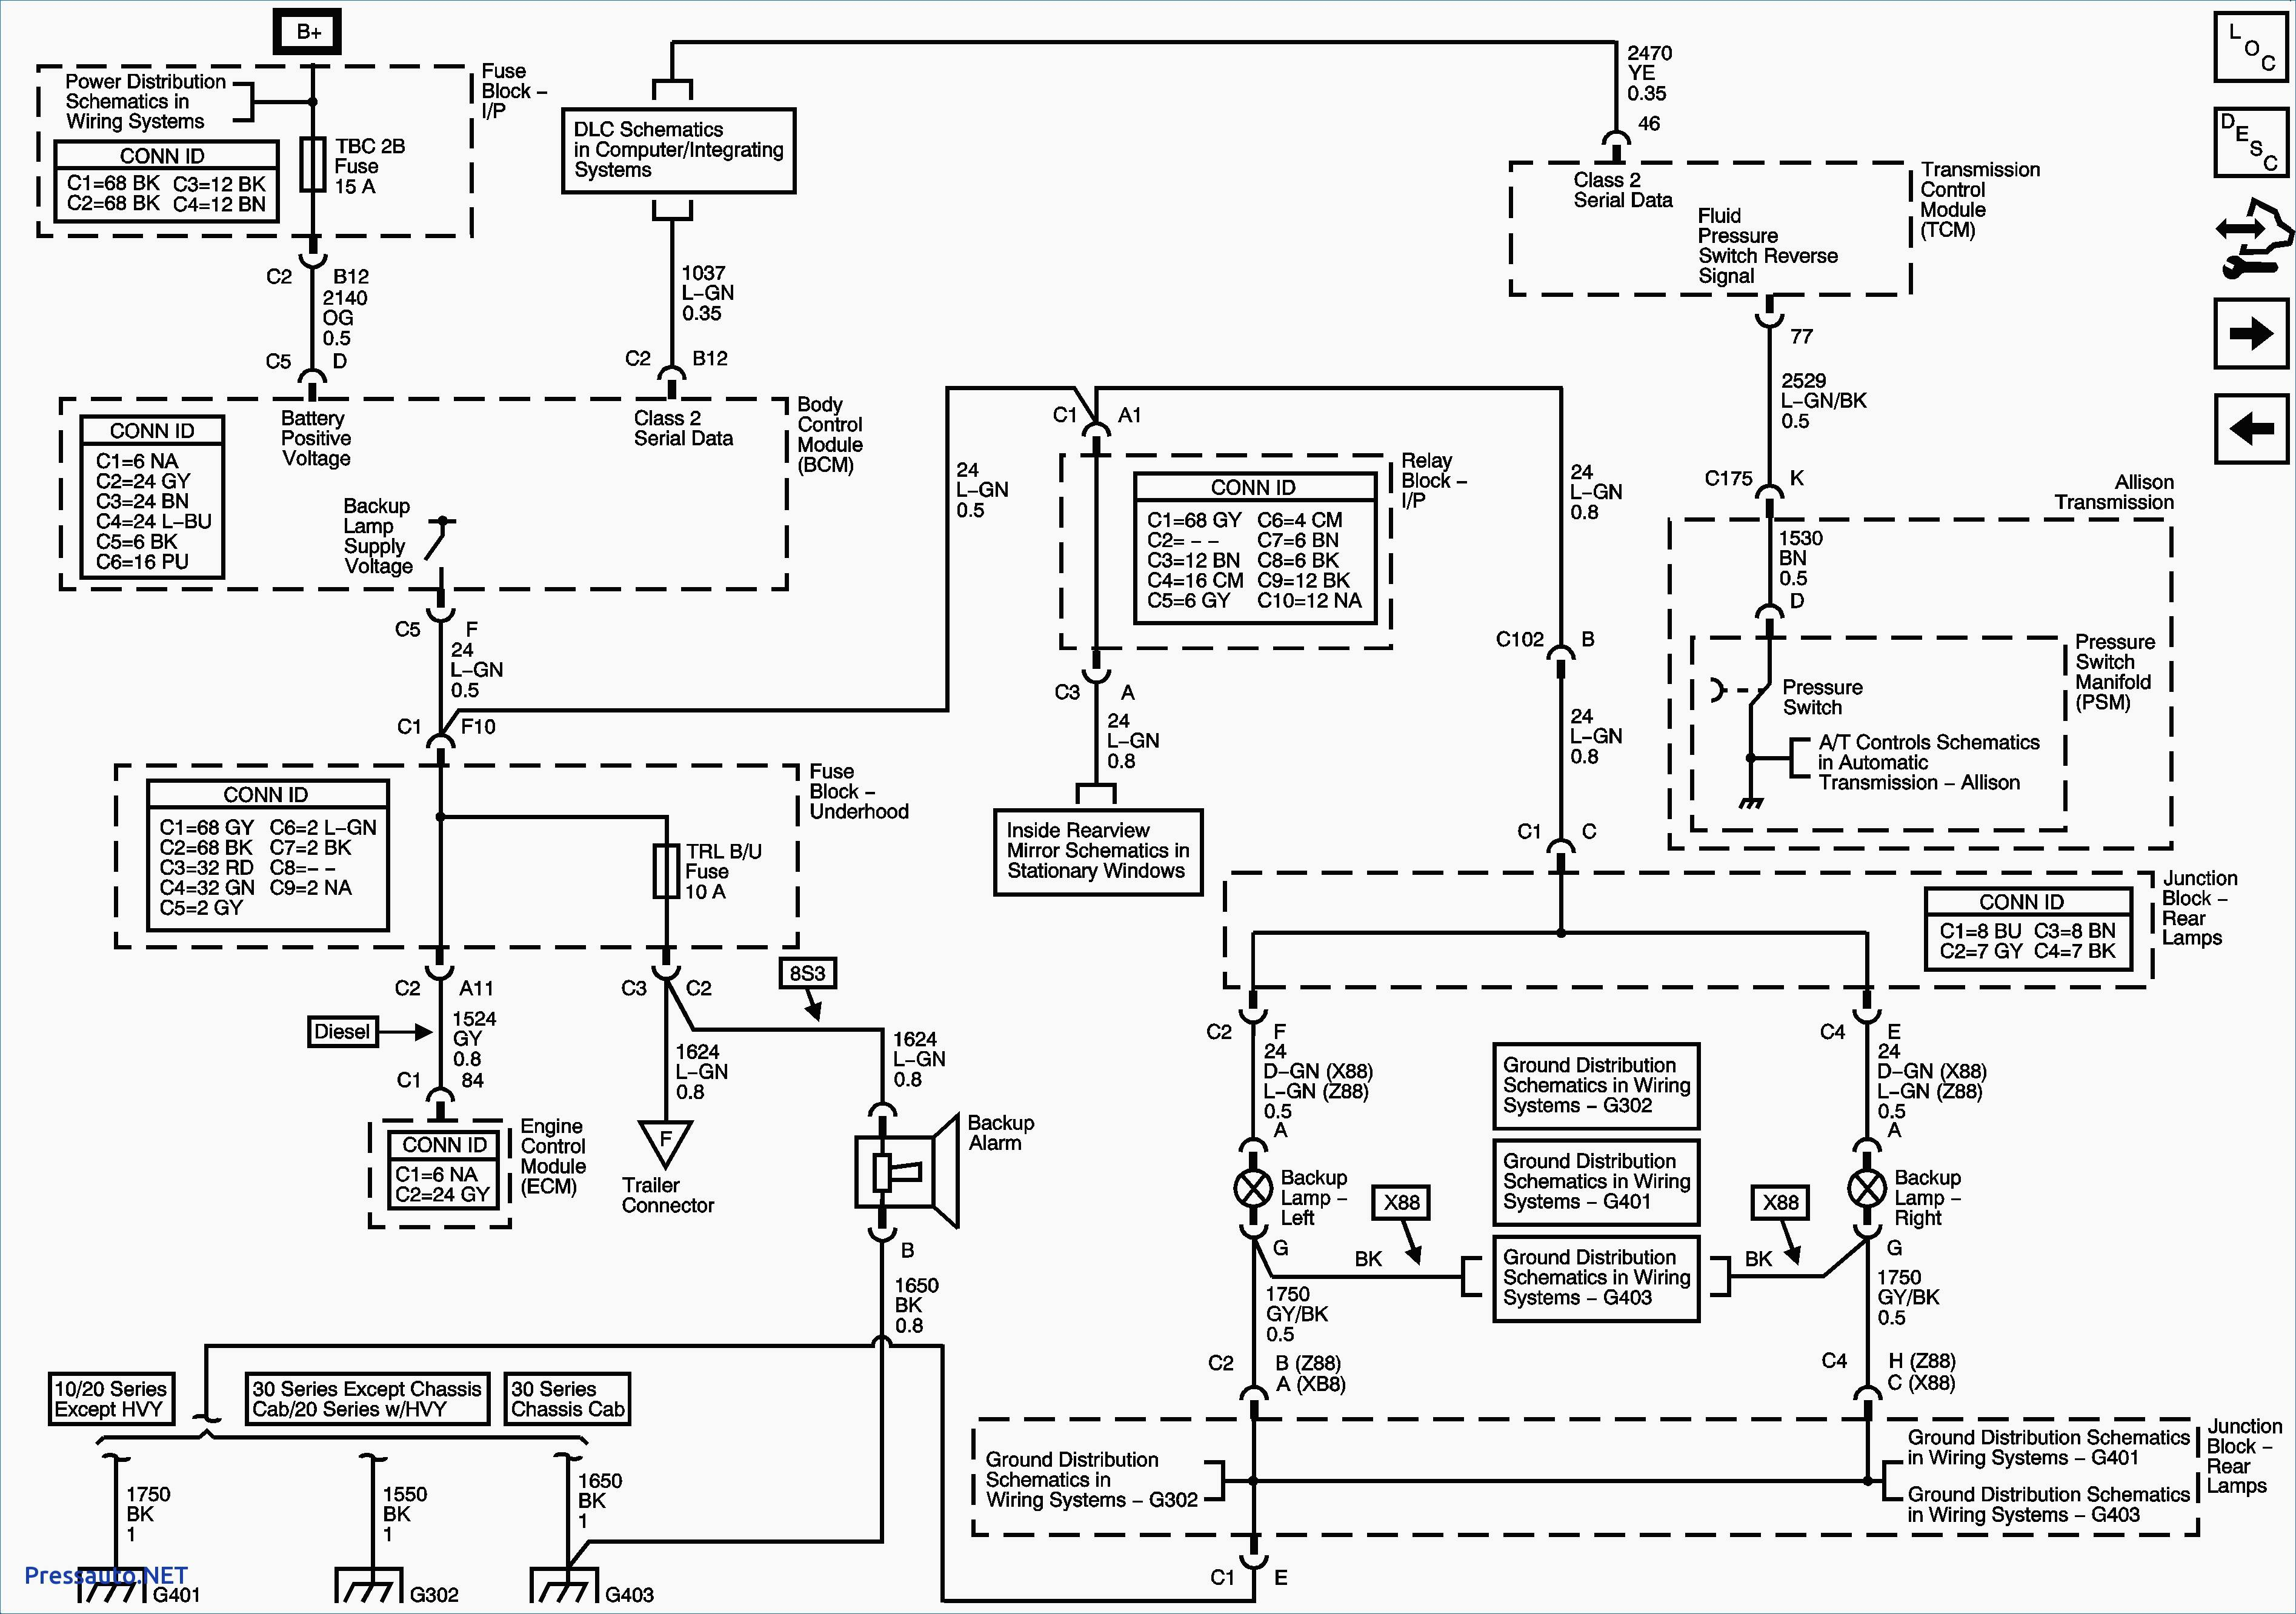 Wiring Diagram 2006 Chevy Trucks - Wiring Diagrams Click - 2006 Chevy Silverado Trailer Wiring Diagram